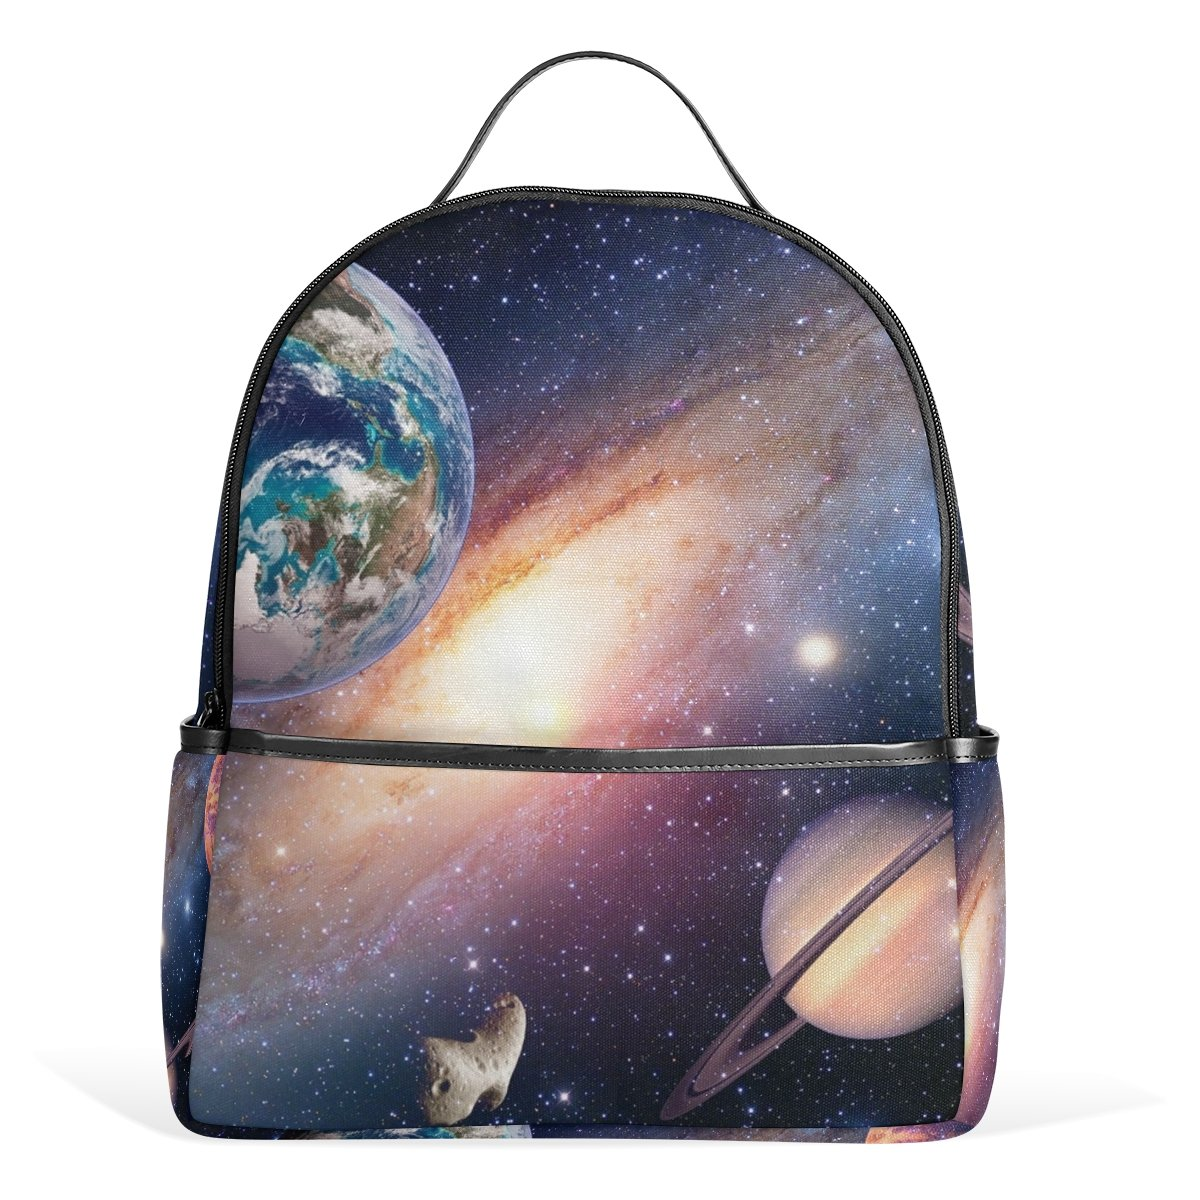 5c288e0455 Amazon.com  YZGO Space Planet Galaxy Children School Backpacks for Boys  Girls Youth Canvas Bookbags Travel Laptop Bags  Computers   Accessories